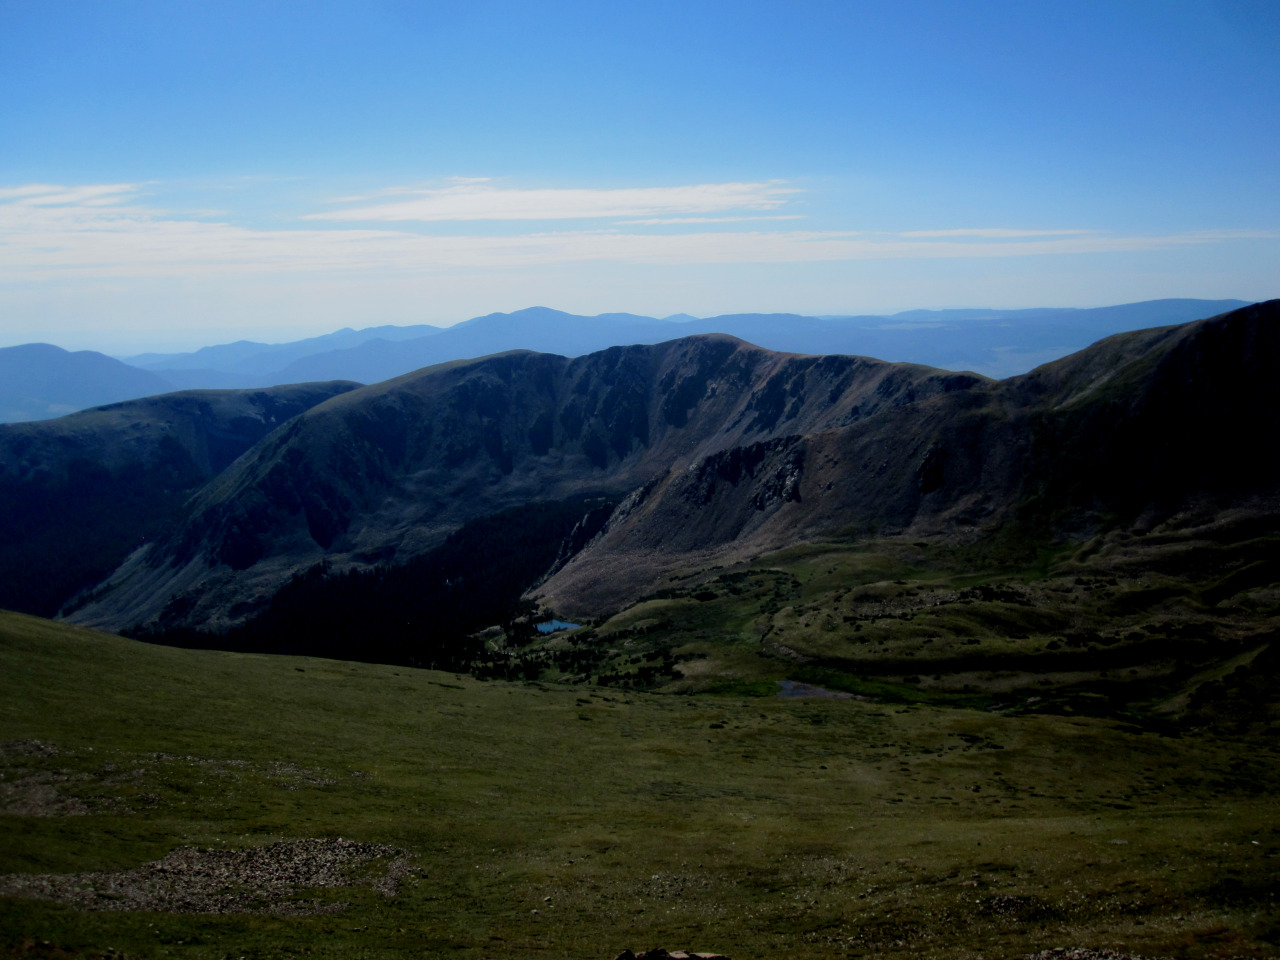 16 days: more from the Williams Lake trail up to Wheeler Peak just outside of Taos, NM.